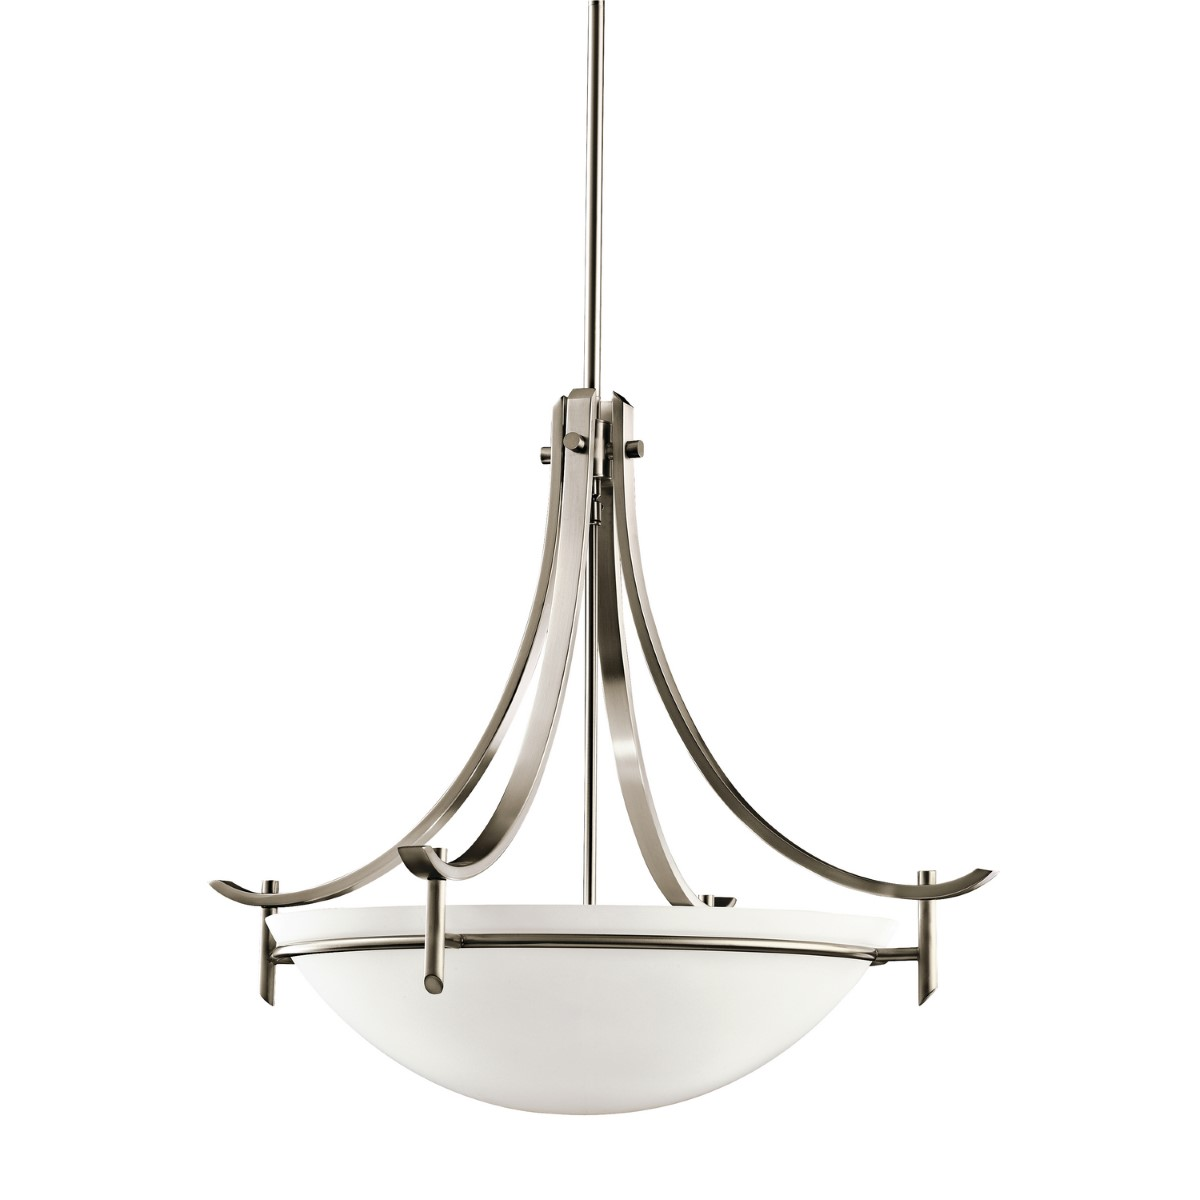 Kichler Olympia Olympia Pendant Light with Satin Etched White Steel Shade - Antique Pewter (3278AP)